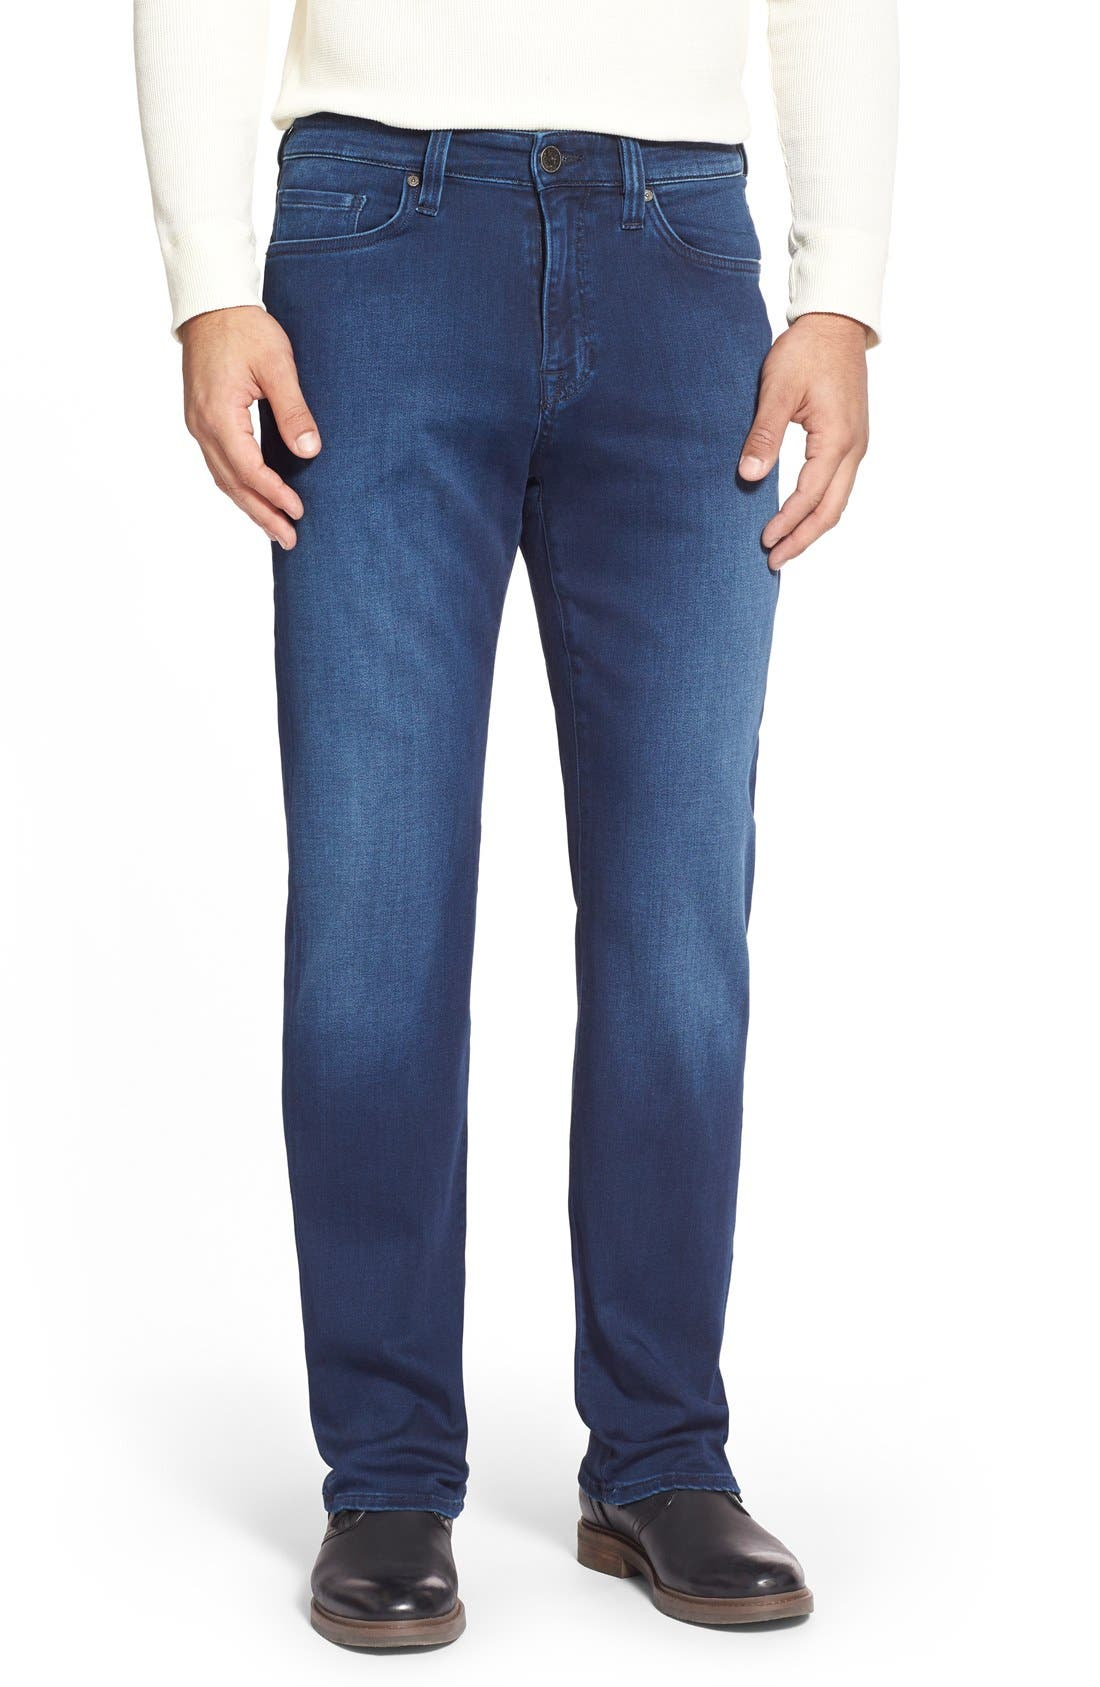 'Charisma' Relaxed Fit Jeans,                             Main thumbnail 1, color,                             Select Indigo